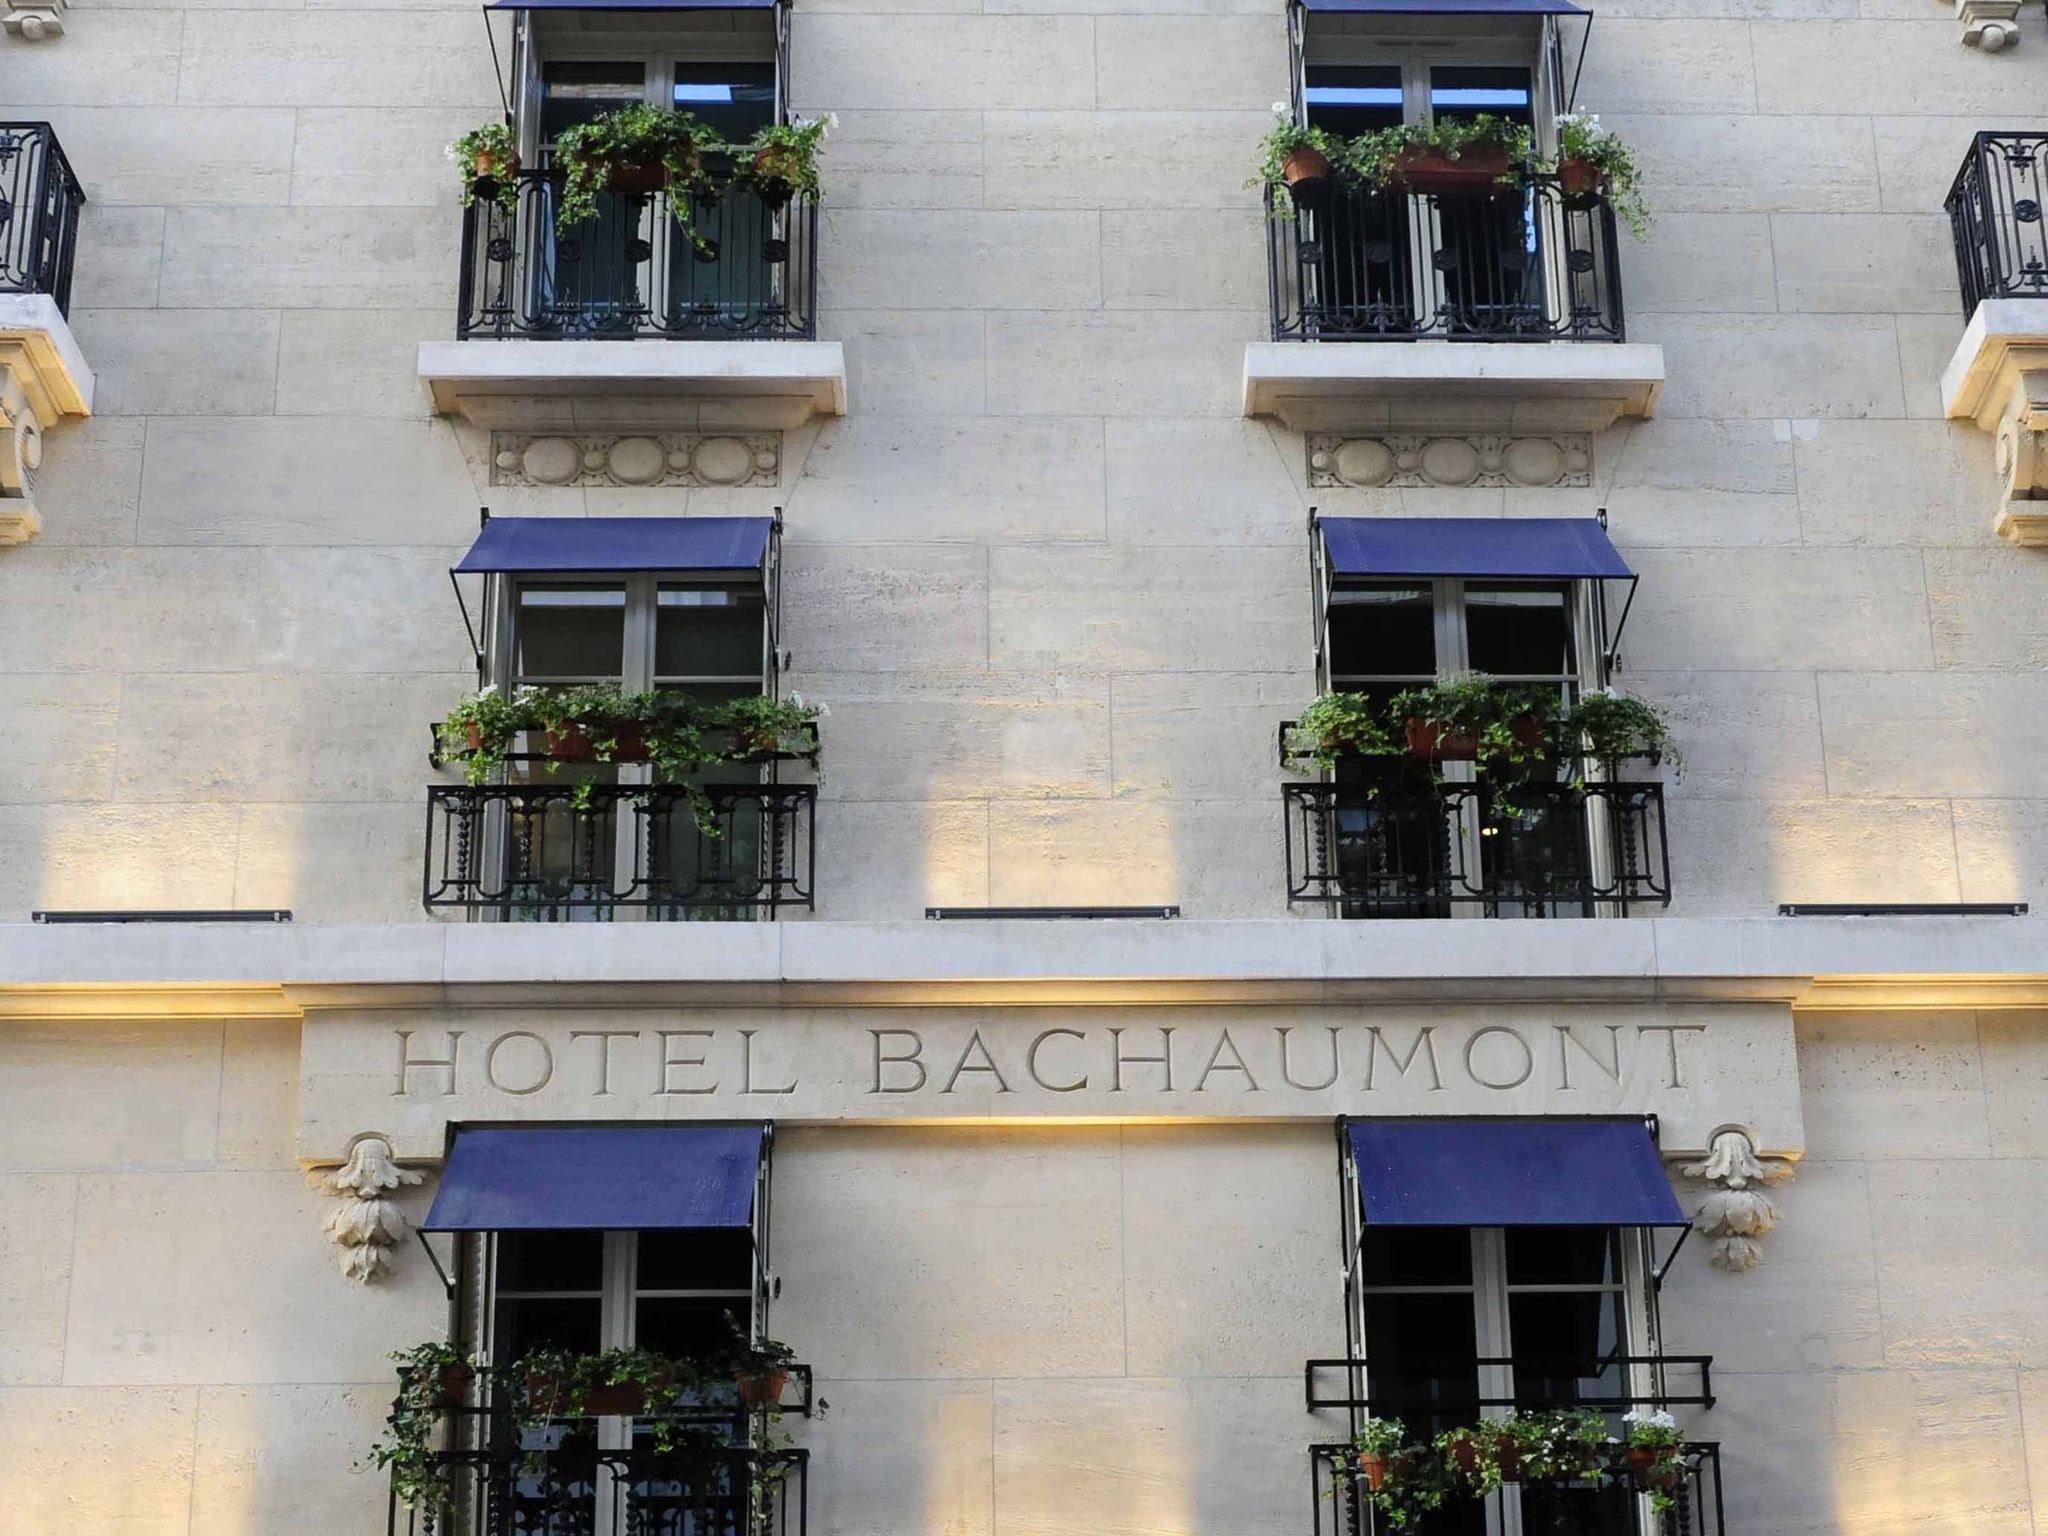 hotel in paris hotel bachaumont. Black Bedroom Furniture Sets. Home Design Ideas